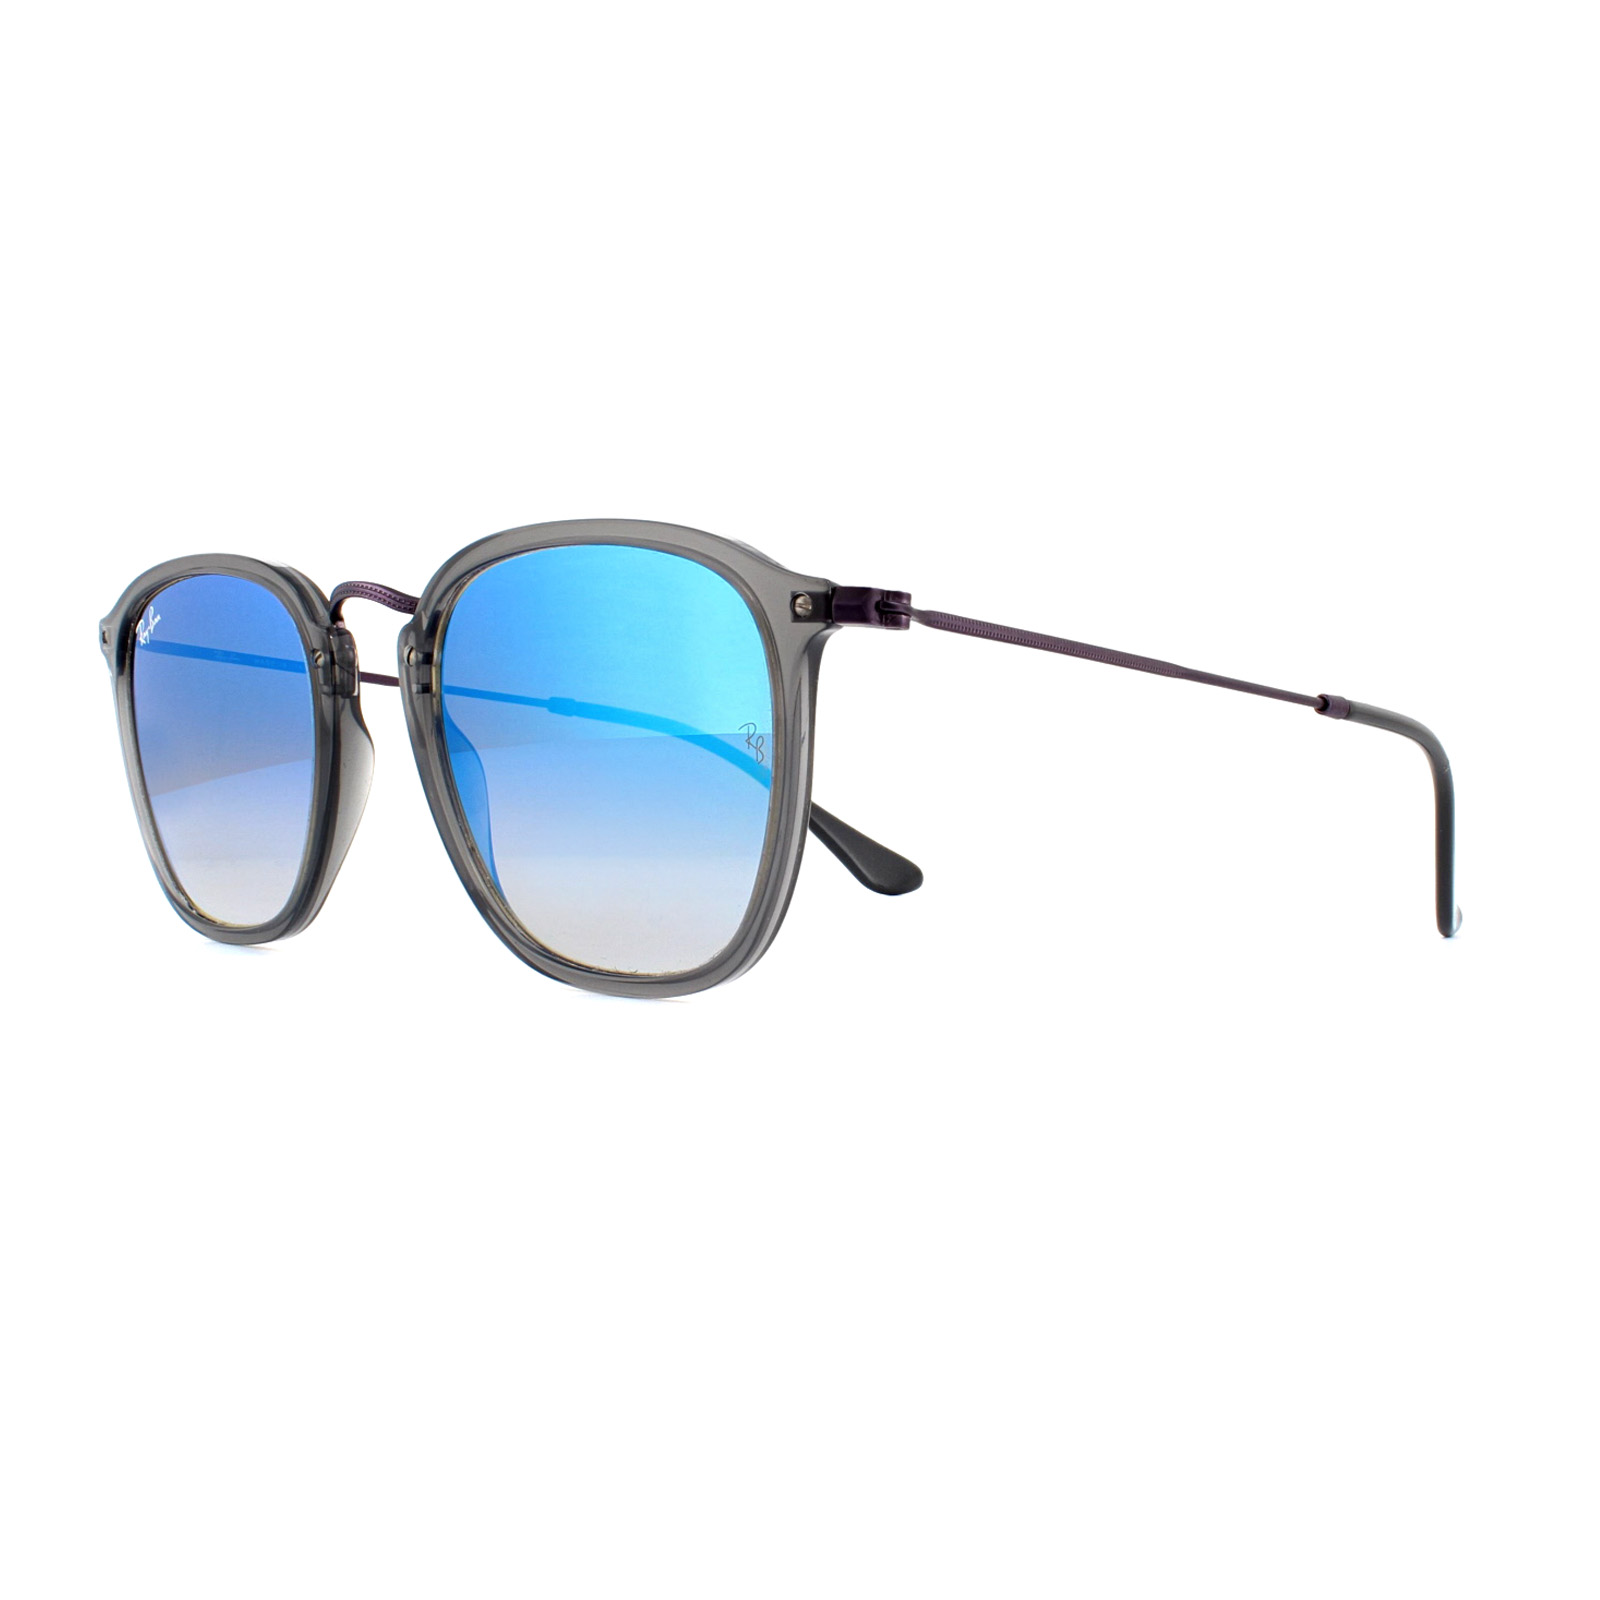 4389f243a3 Sentinel Ray-Ban Sunglasses 2448N 62554O Transparent Grey Blue Flash  Gradient